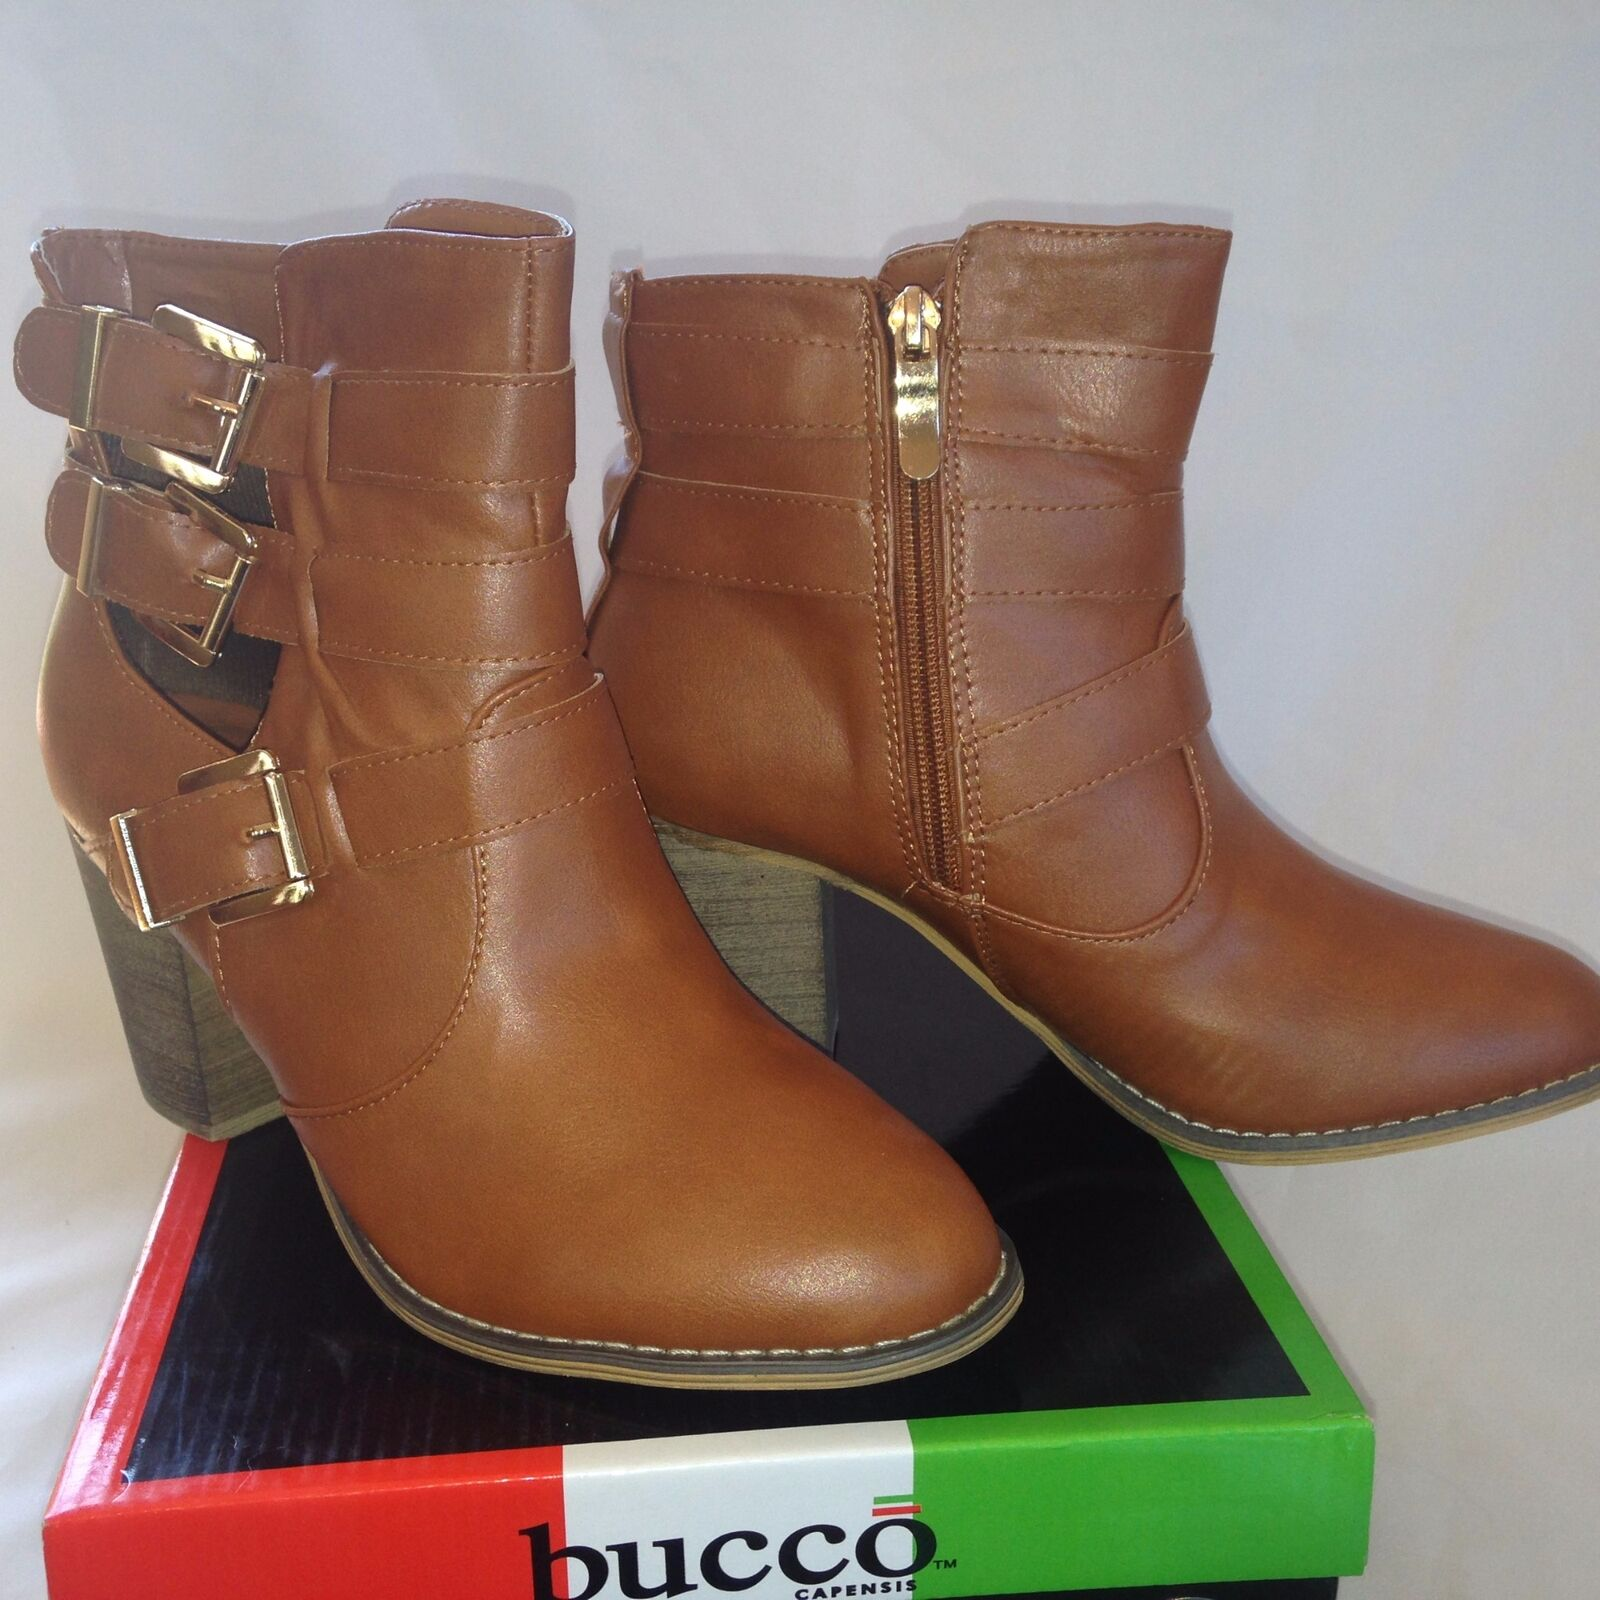 Bucco Togg Cognac Ankle Boot Size 7.5